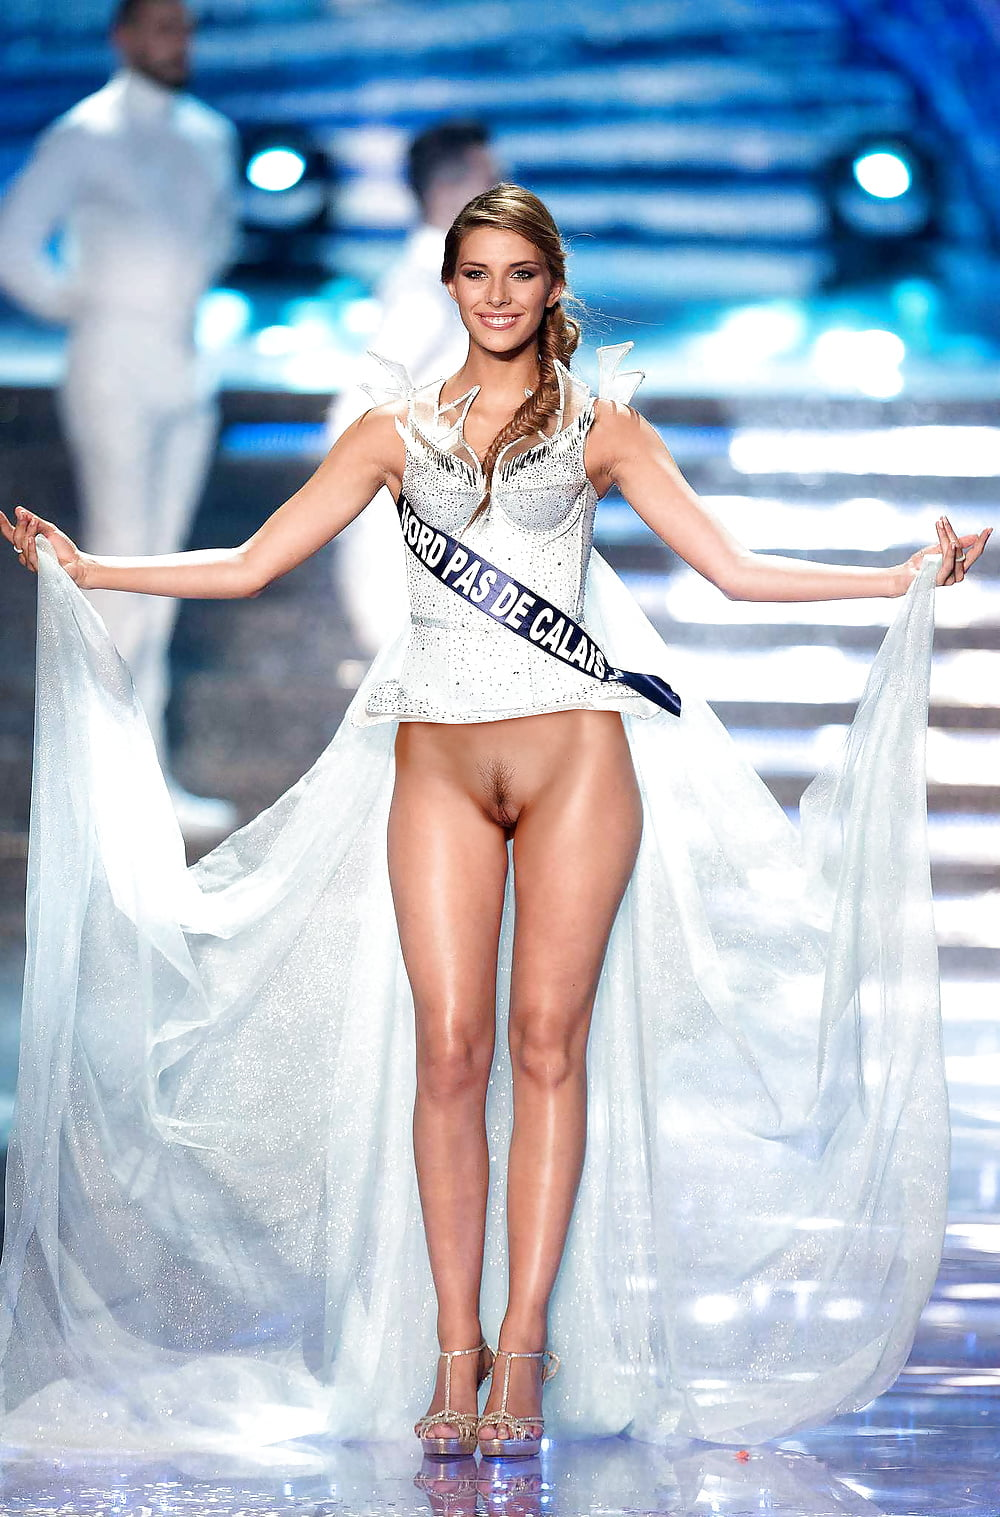 Nude Photos, Selling Drugs And Stealing Crowns When Beauty Pageants Turn